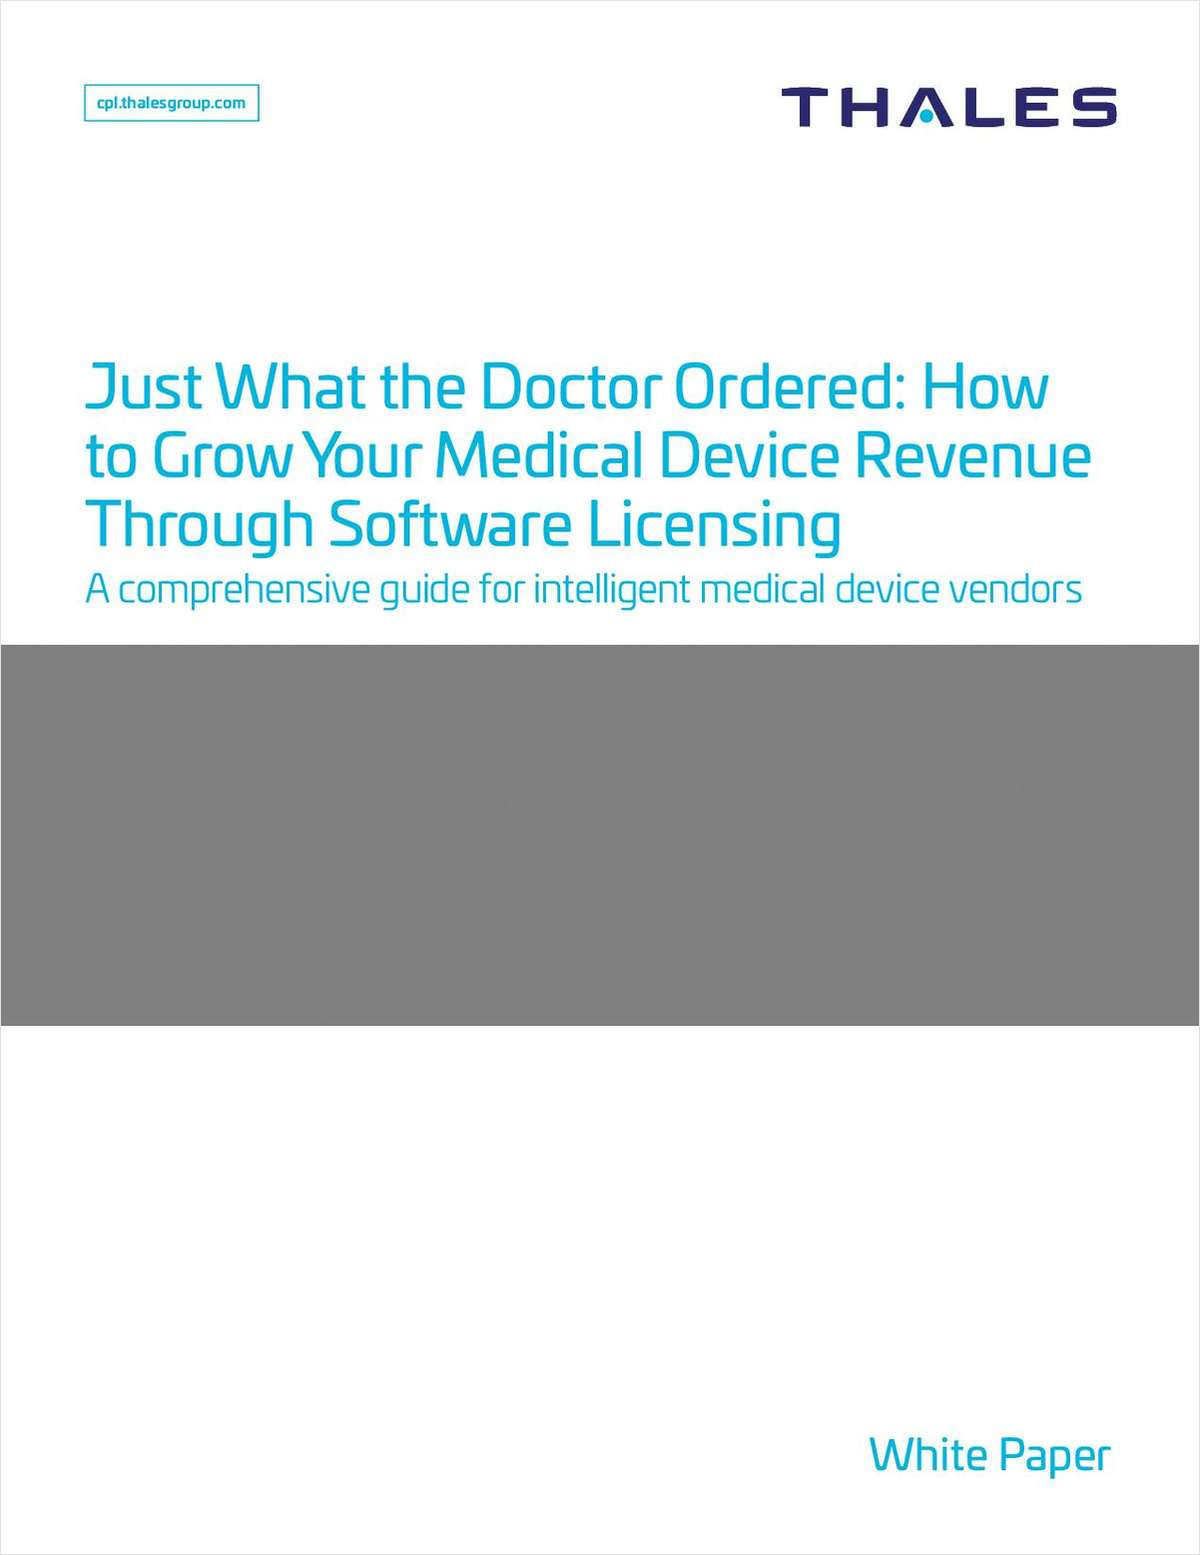 Just What the Doctor Ordered! How to Grow Your Medical Device Revenue Through Software Licensing